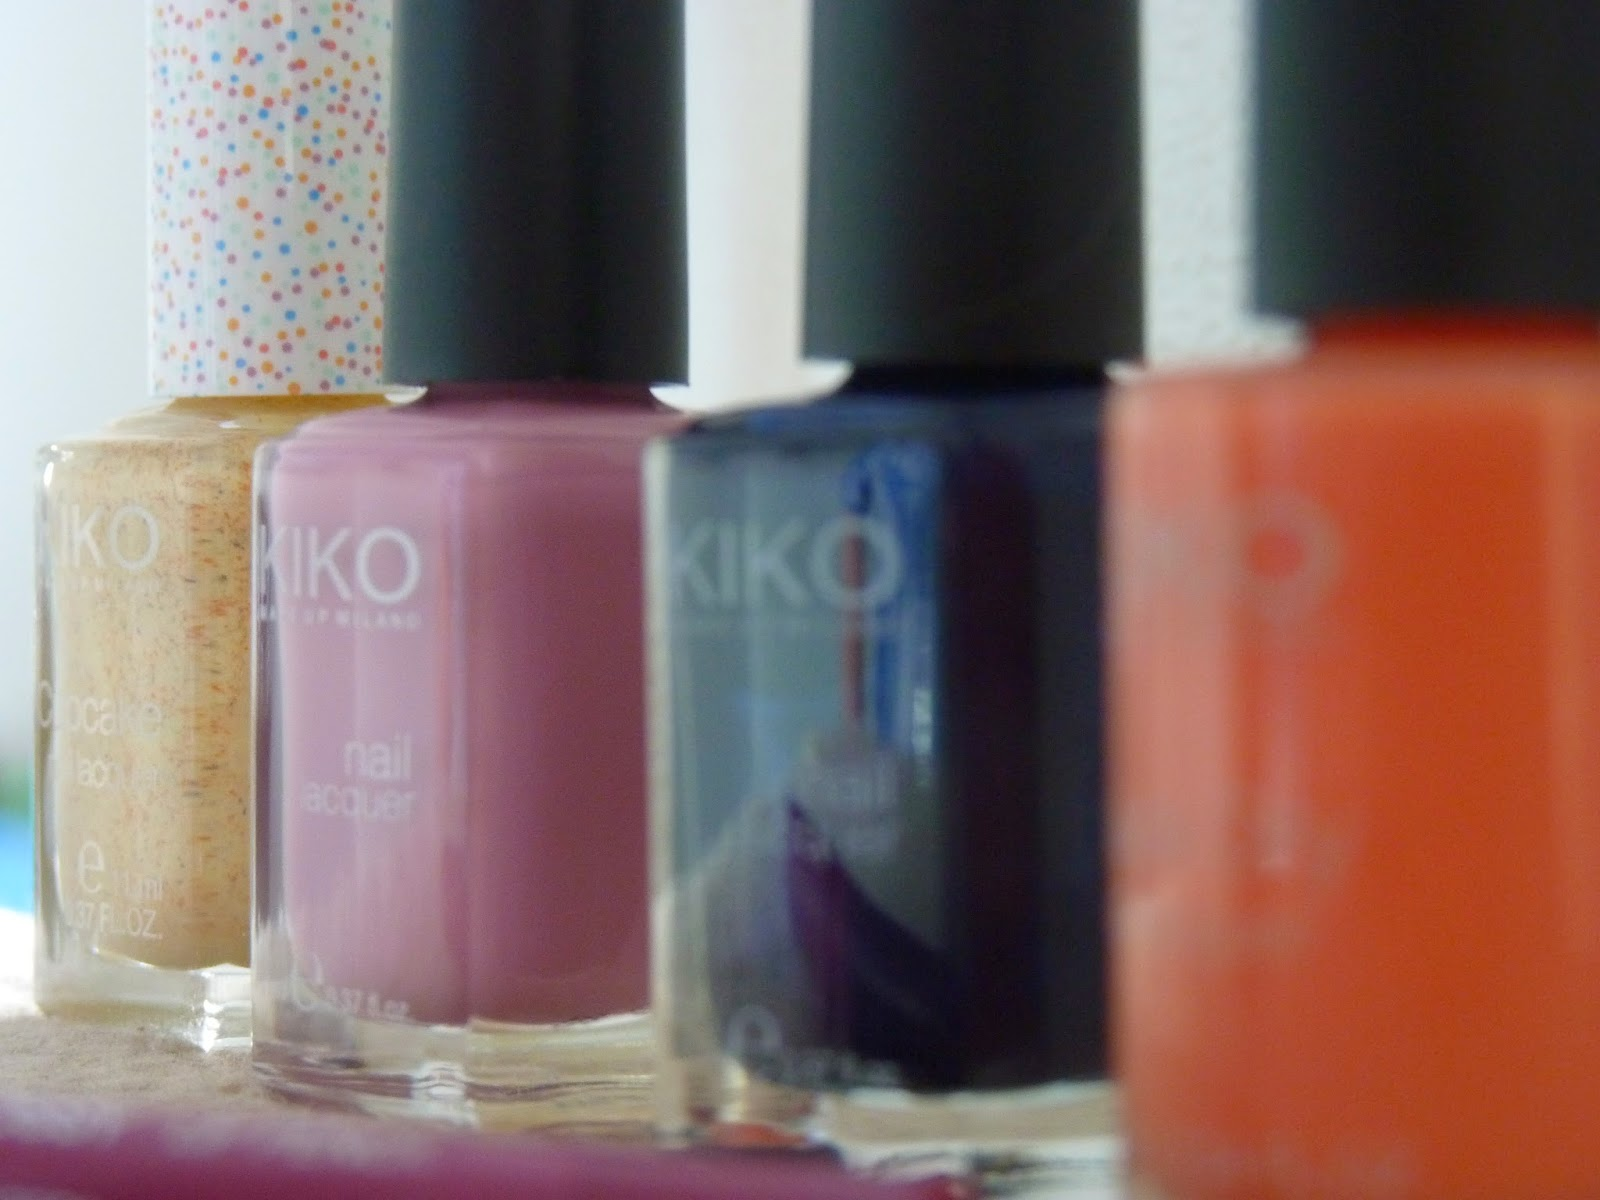 quick dry, vernis à ongle, vernis, 1.50€, 350€, 4.90€, 804, corail, coral, china blue, bleu irrisé, bleu palleté, cupcake, 265, 377, apple blossom, rose, orange, bleu nuit, jaune,